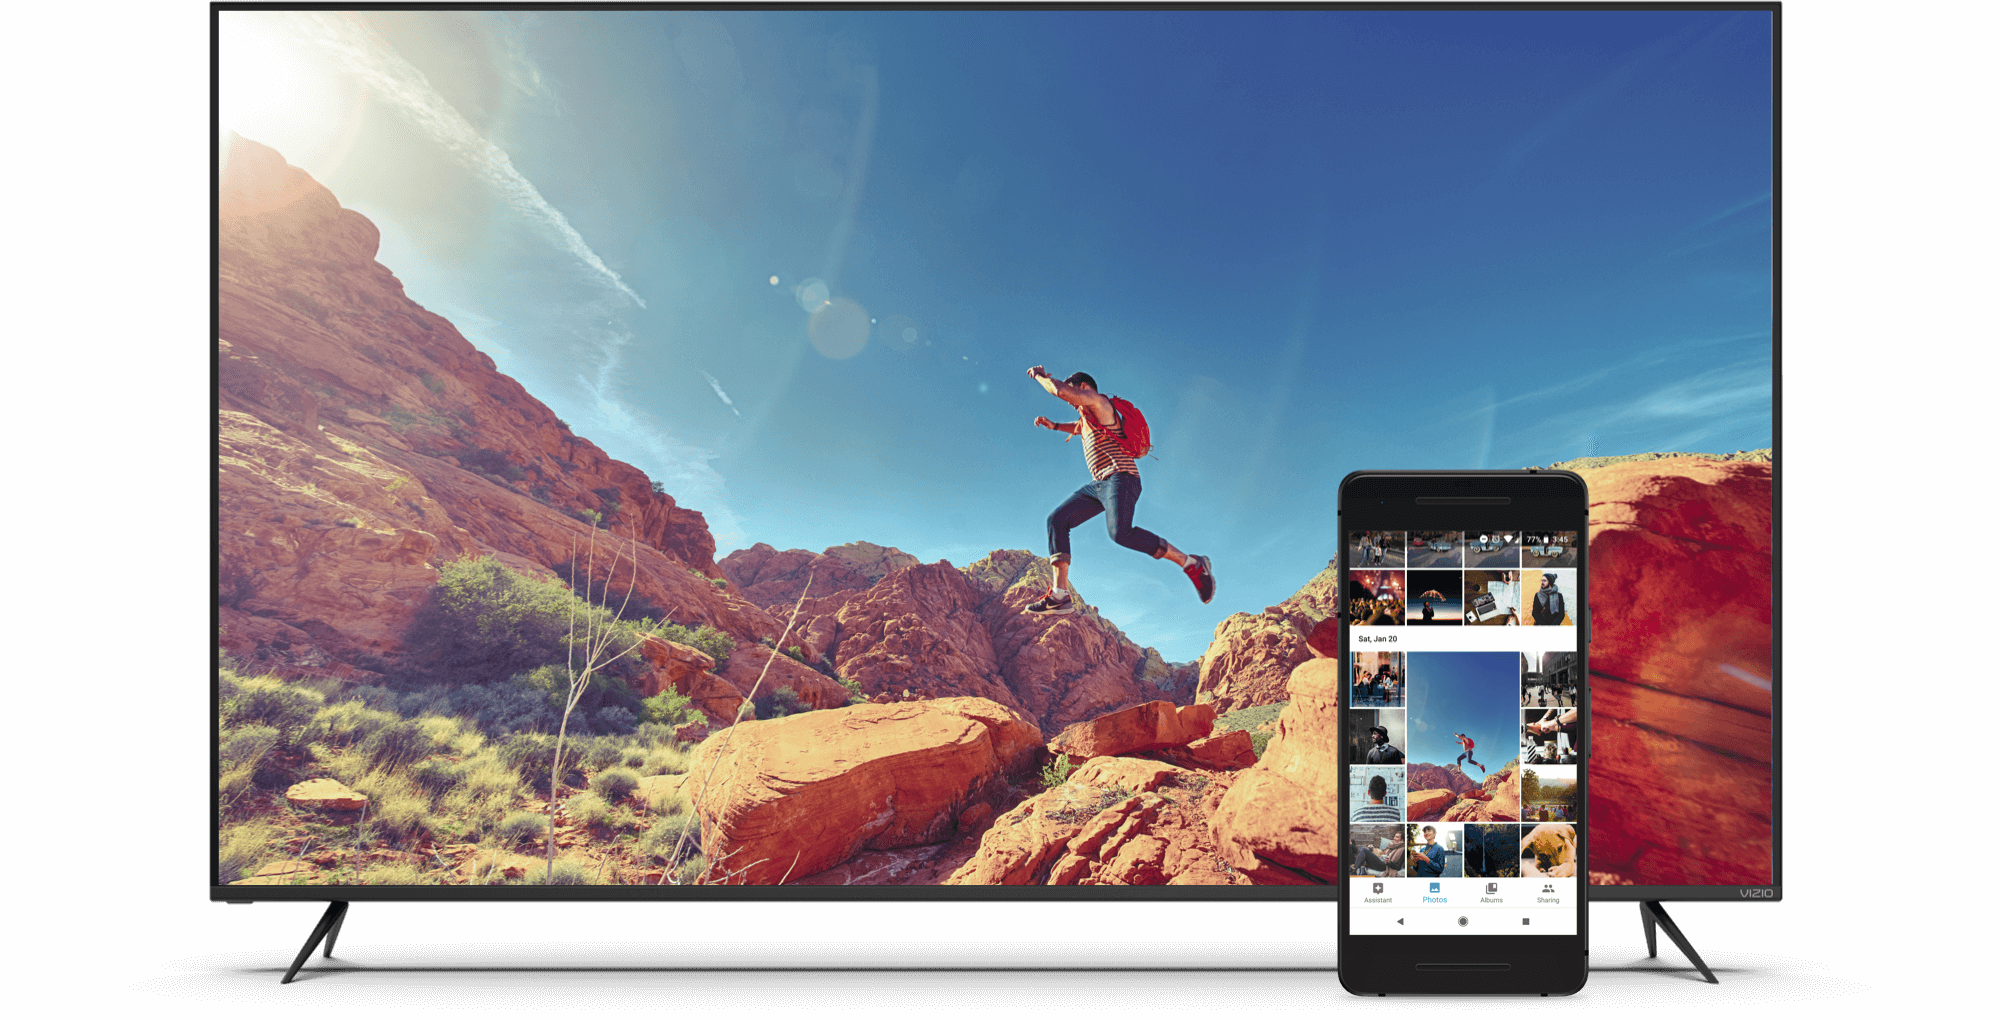 VIZIO TV Featuring Google Photos